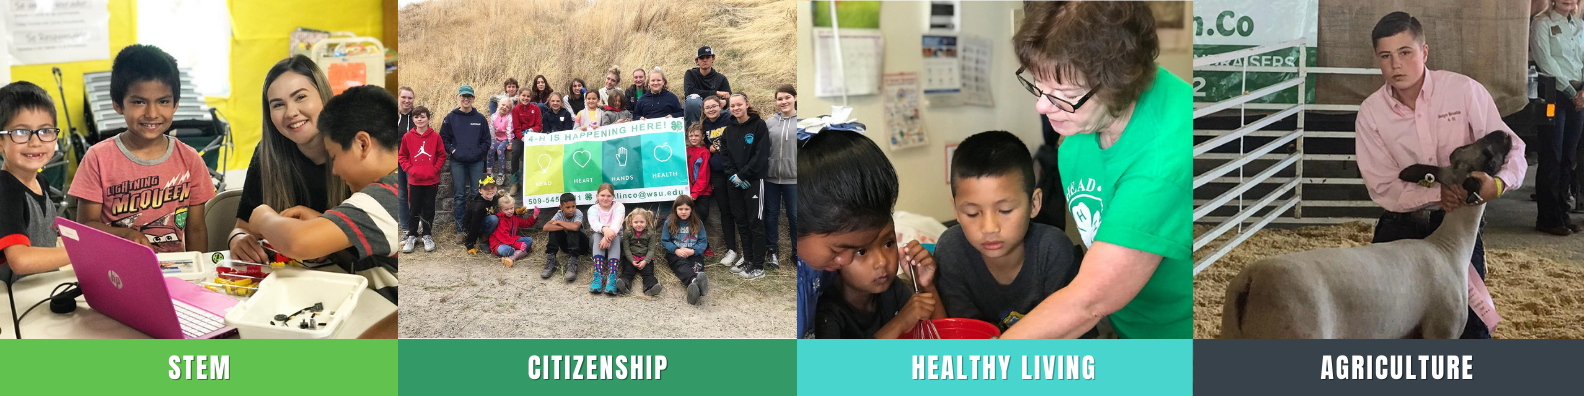 Stem, Citizenship, Healthy Living, Agriculture